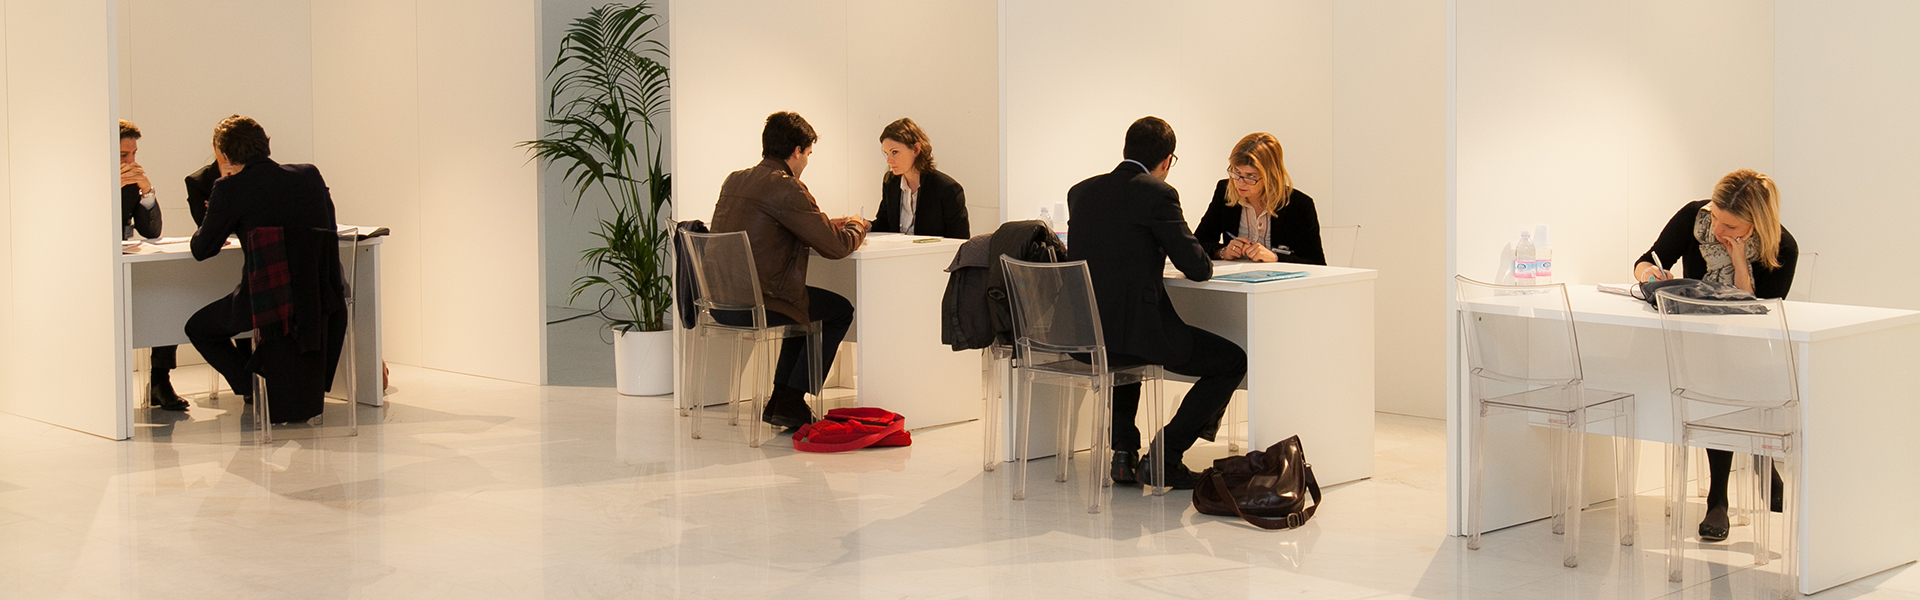 Learn More About the Bocconi Network